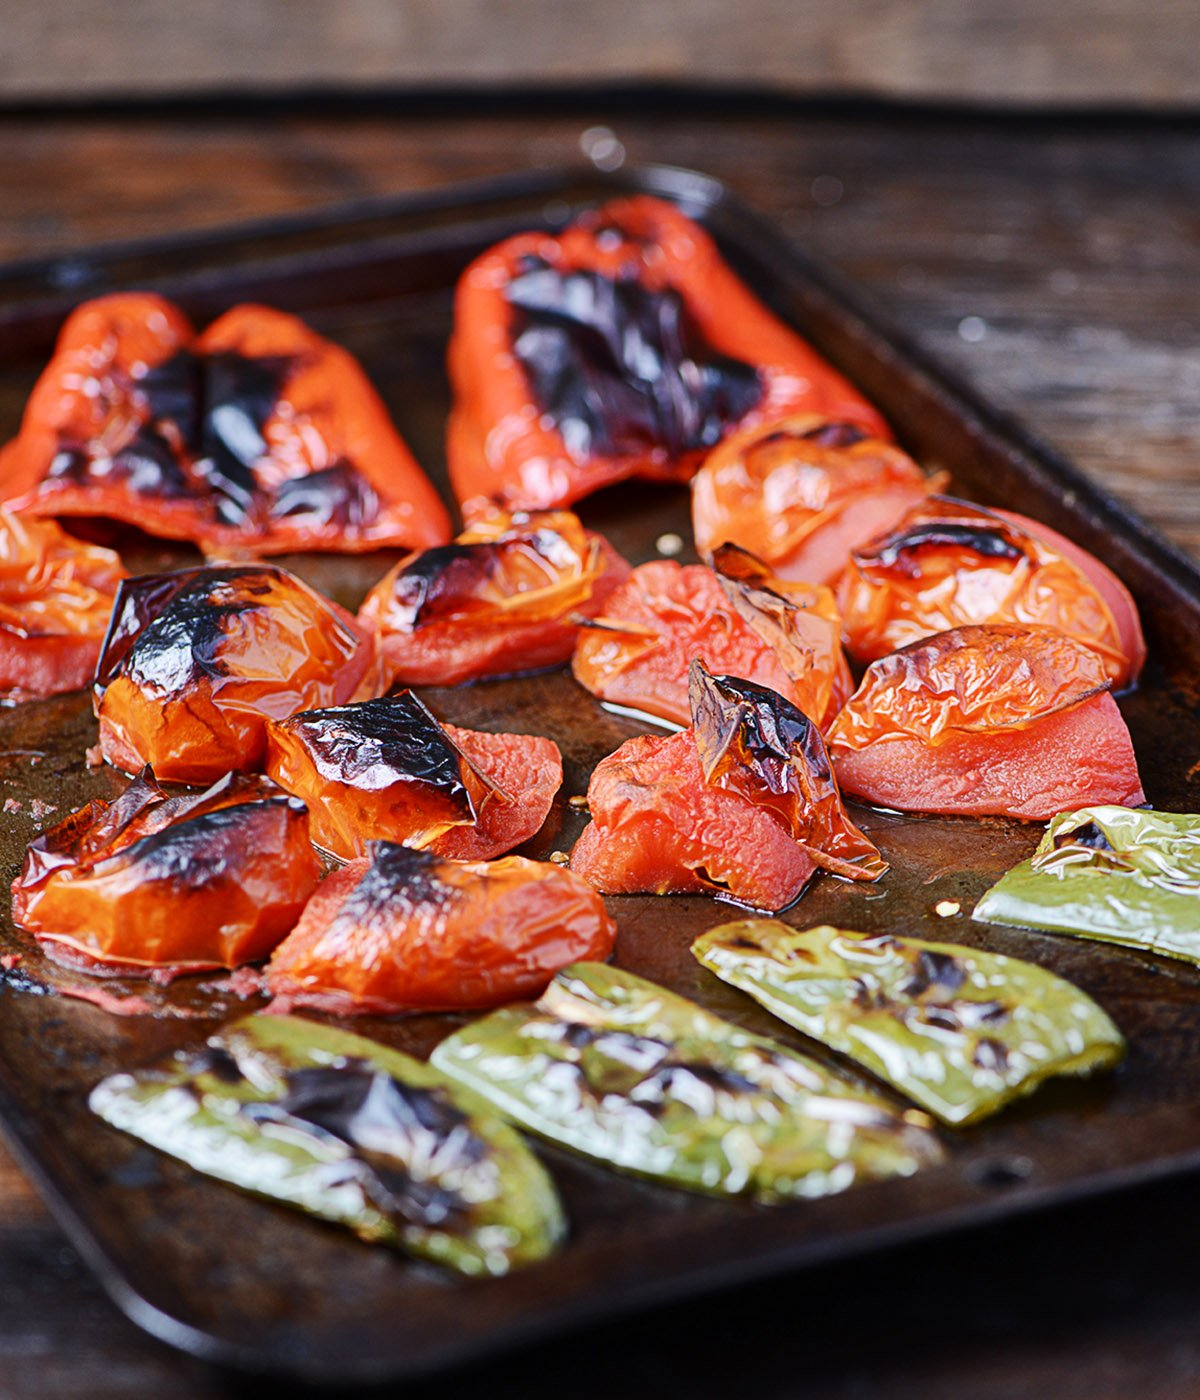 Charred broiled tomatos and jalapeños on a baking tray